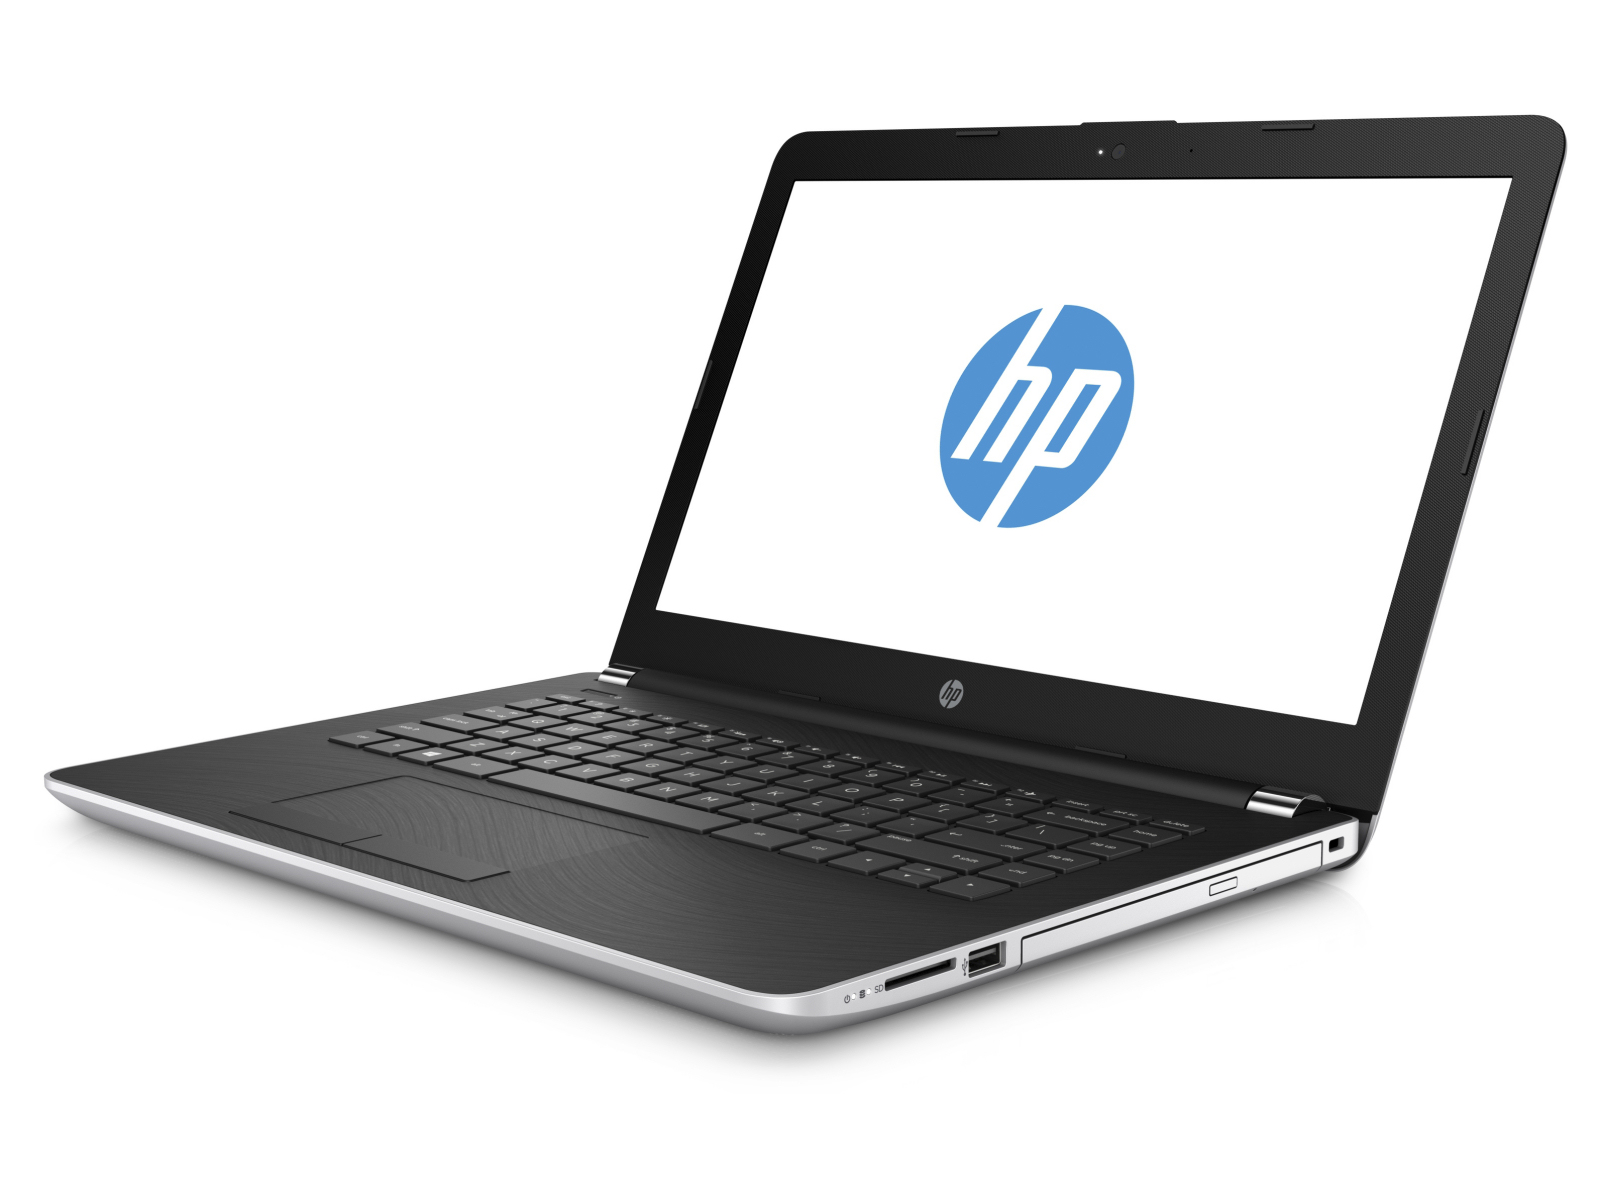 HP 14-bs007ng (i5-7200U, FHD) Laptop Review - NotebookCheck net Reviews